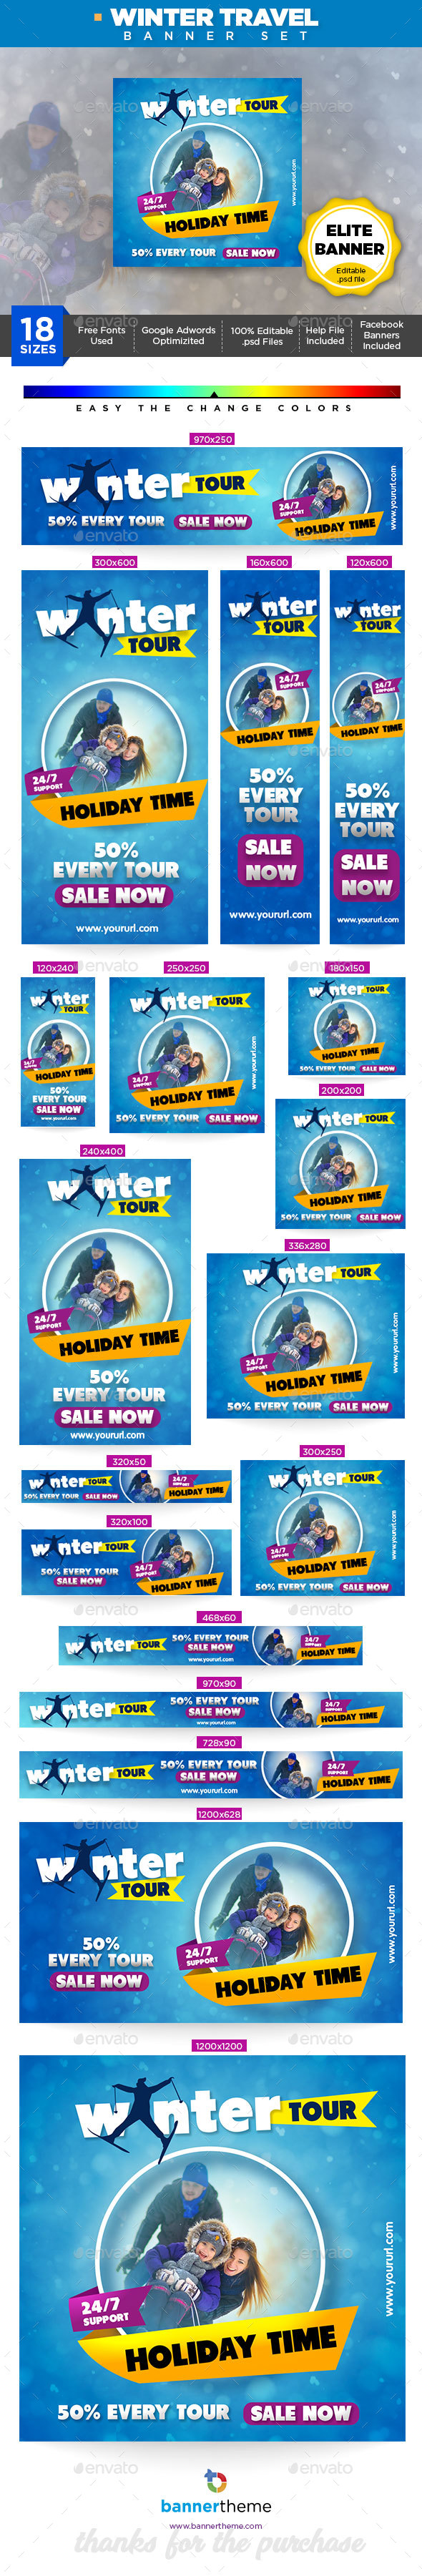 Winter Travel Banner - Banners & Ads Web Elements